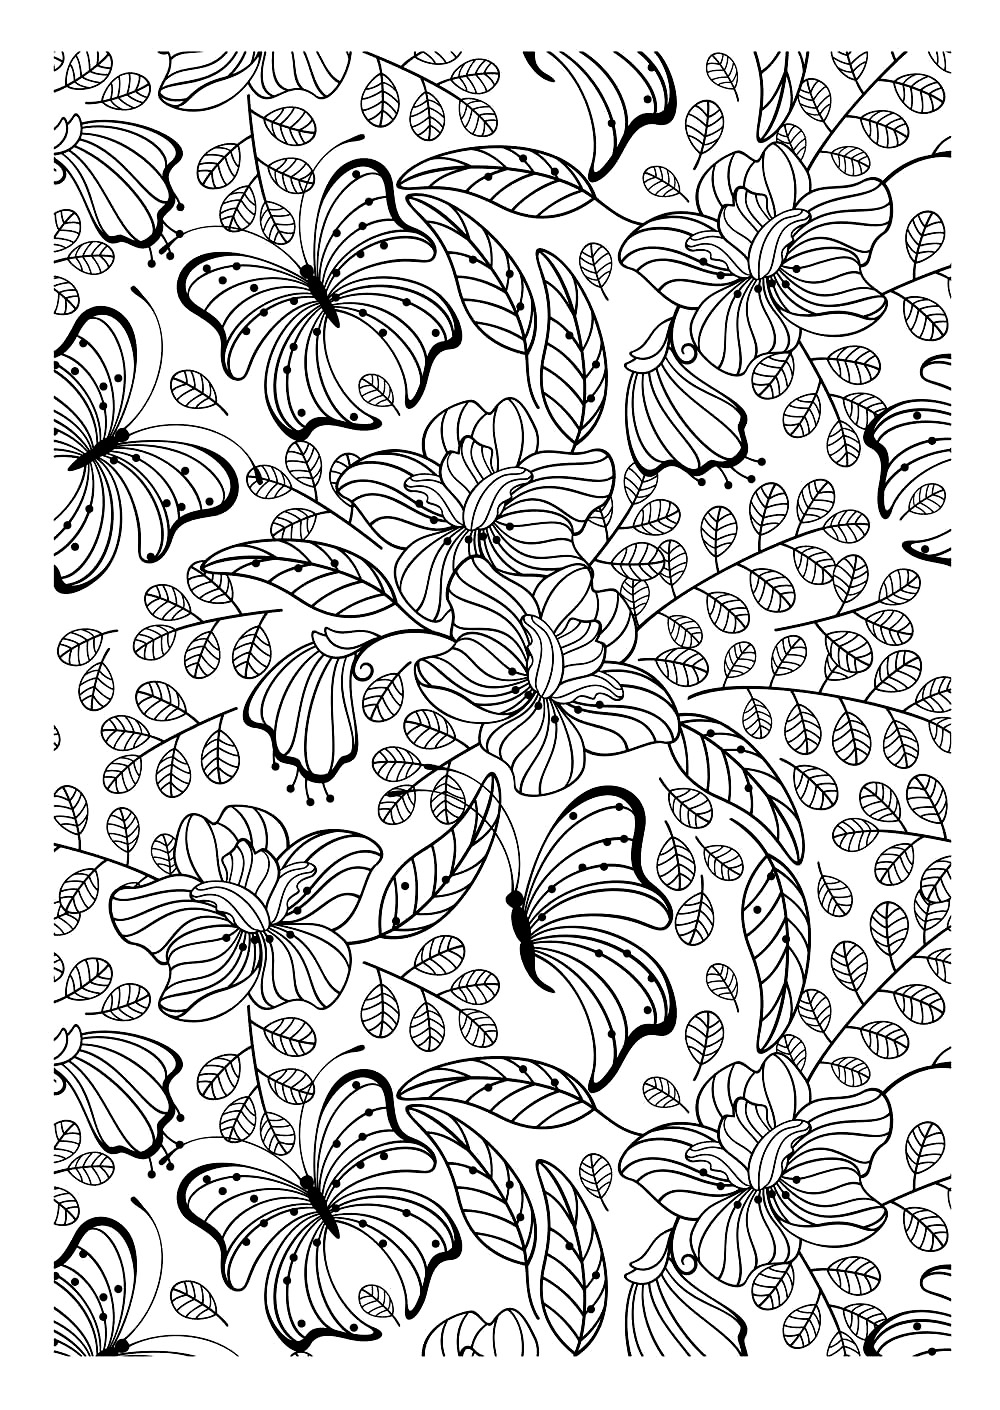 Another Image To Print And Color Filled With Pretty Leaves Flowers Butterflies